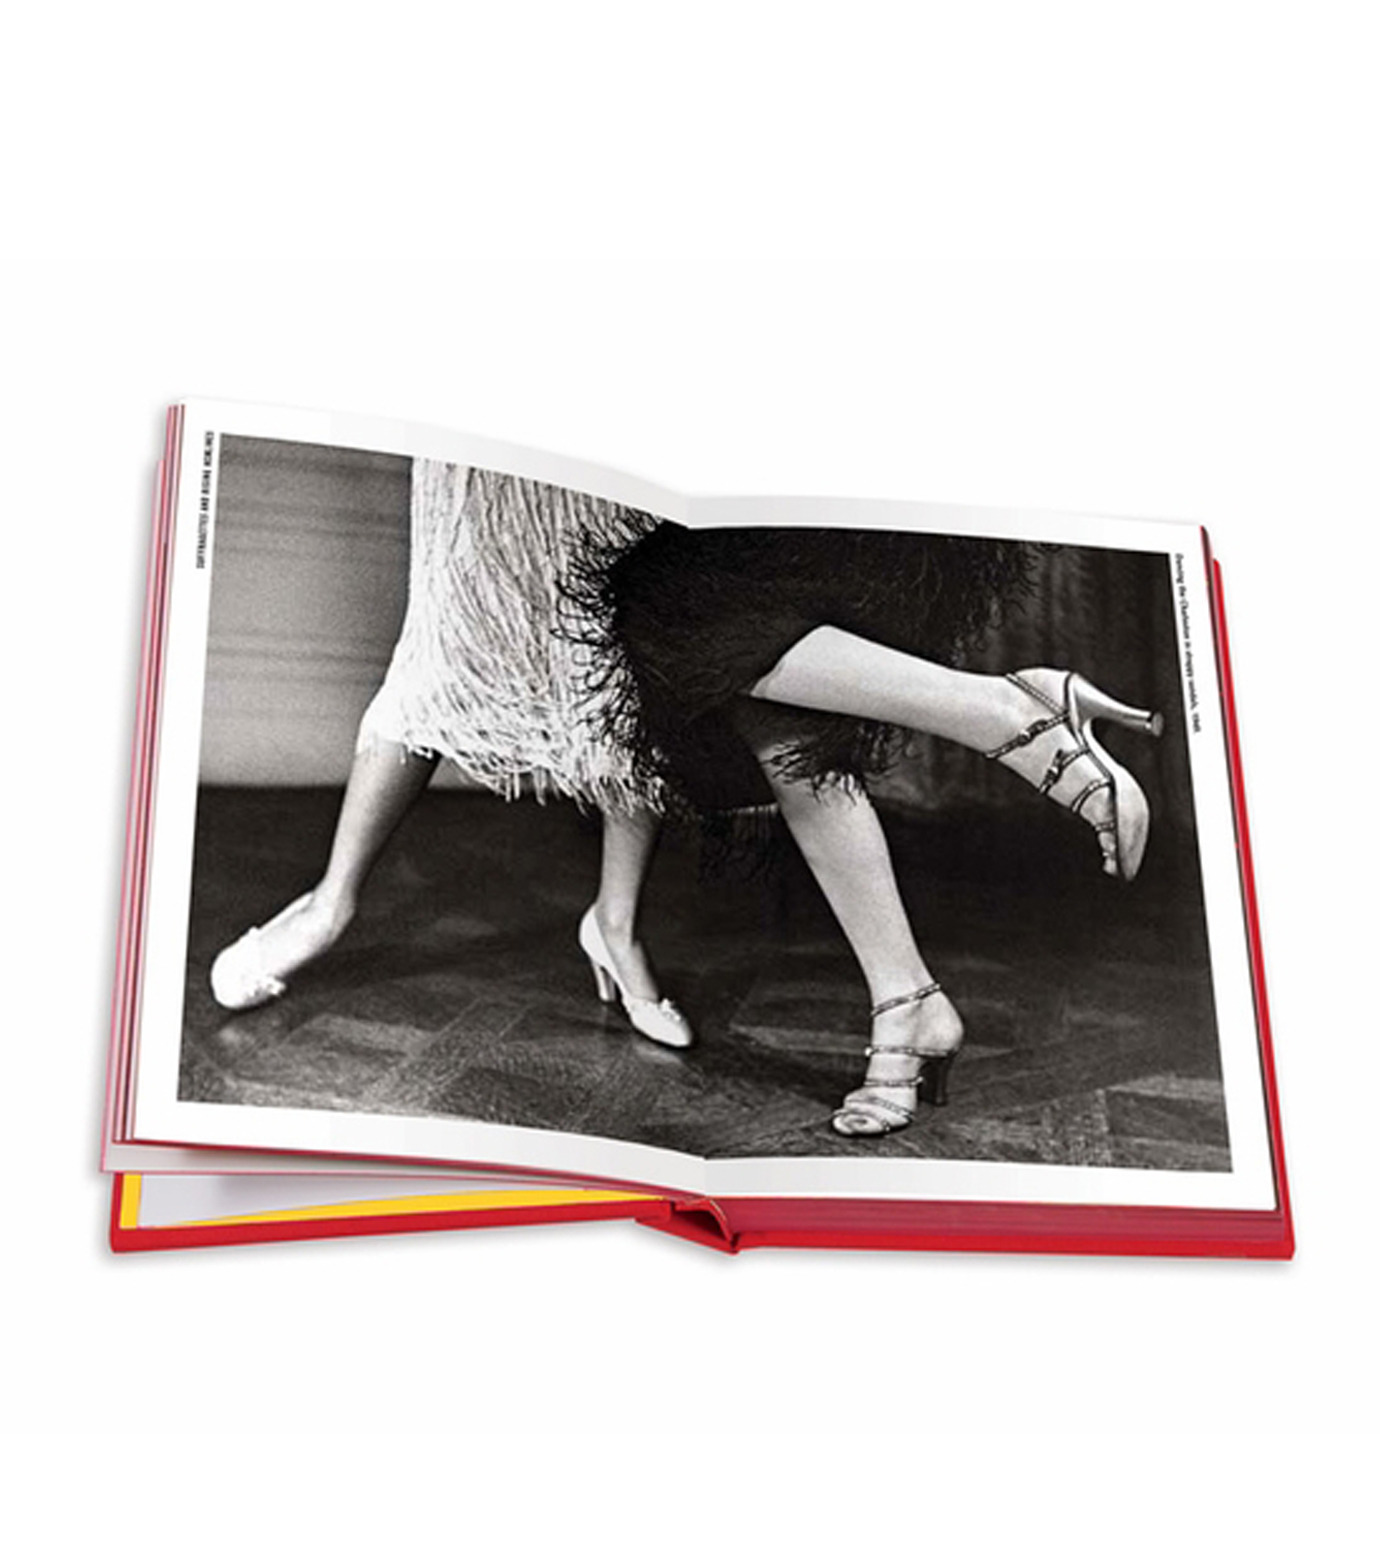 Assouline(アスリーヌ)のThe Shoe Book-RED(インテリア/OTHER-GOODS/interior/OTHER-GOODS)-978161428153-62 拡大詳細画像4